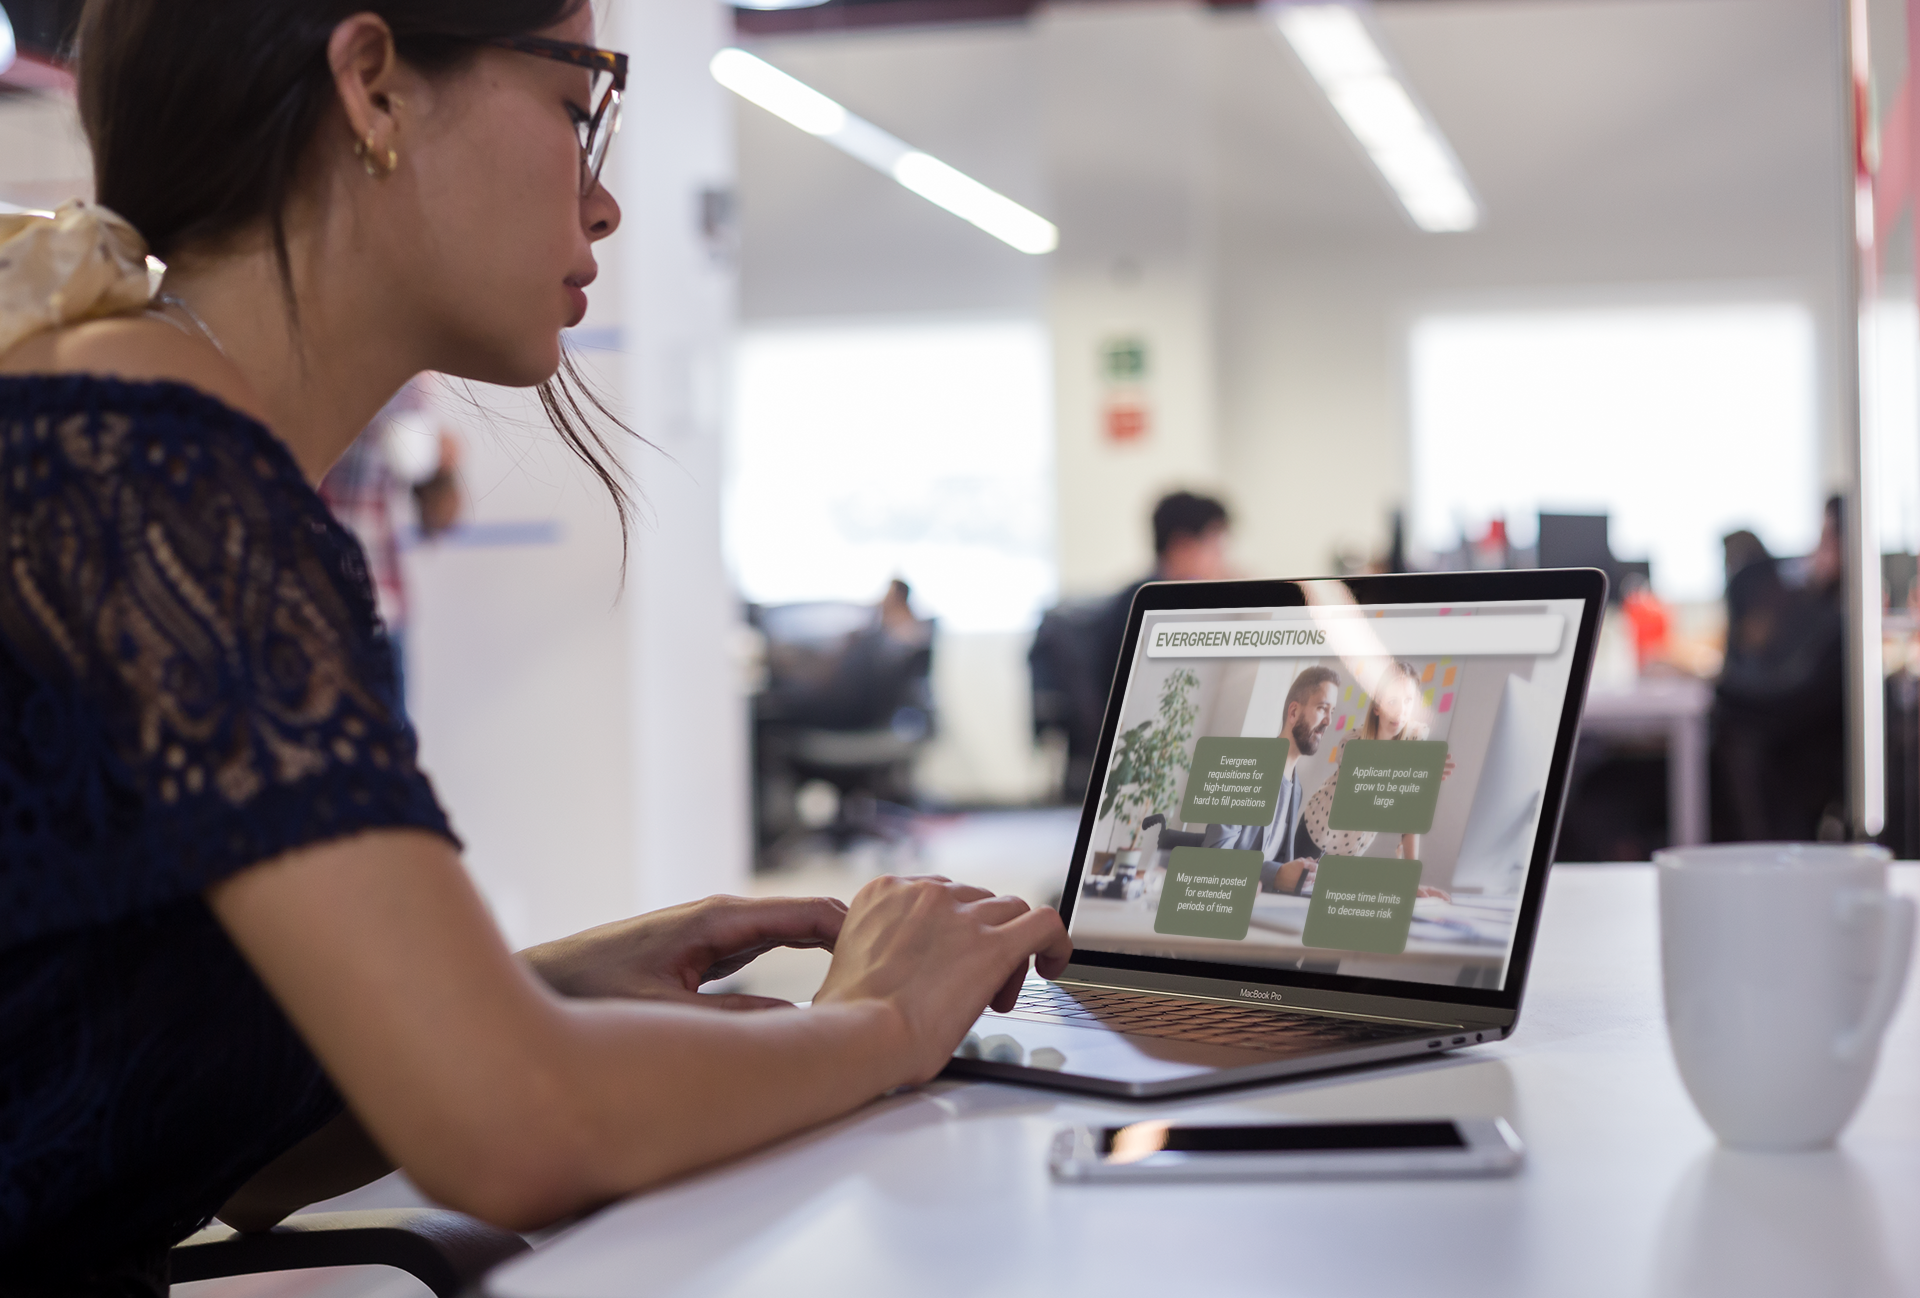 mockup-of-a-girl-working-on-her-macbook-at-a-modern-office-a21442 (2)